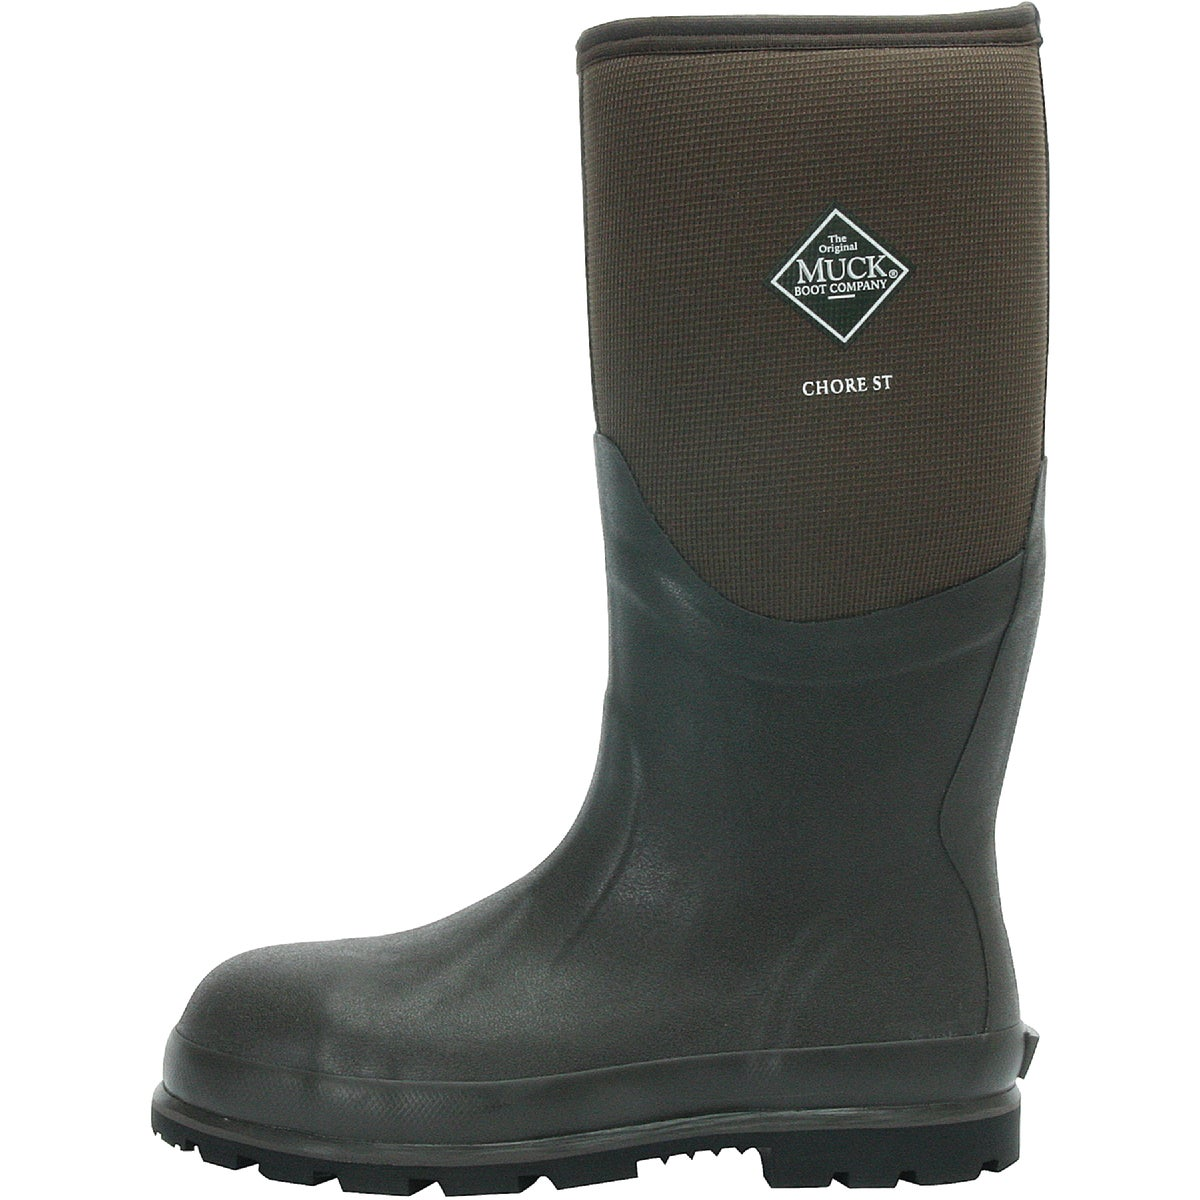 SZ 12 CHORE HI STEELTOE - CHS-000A12 by Muck Boot Team J